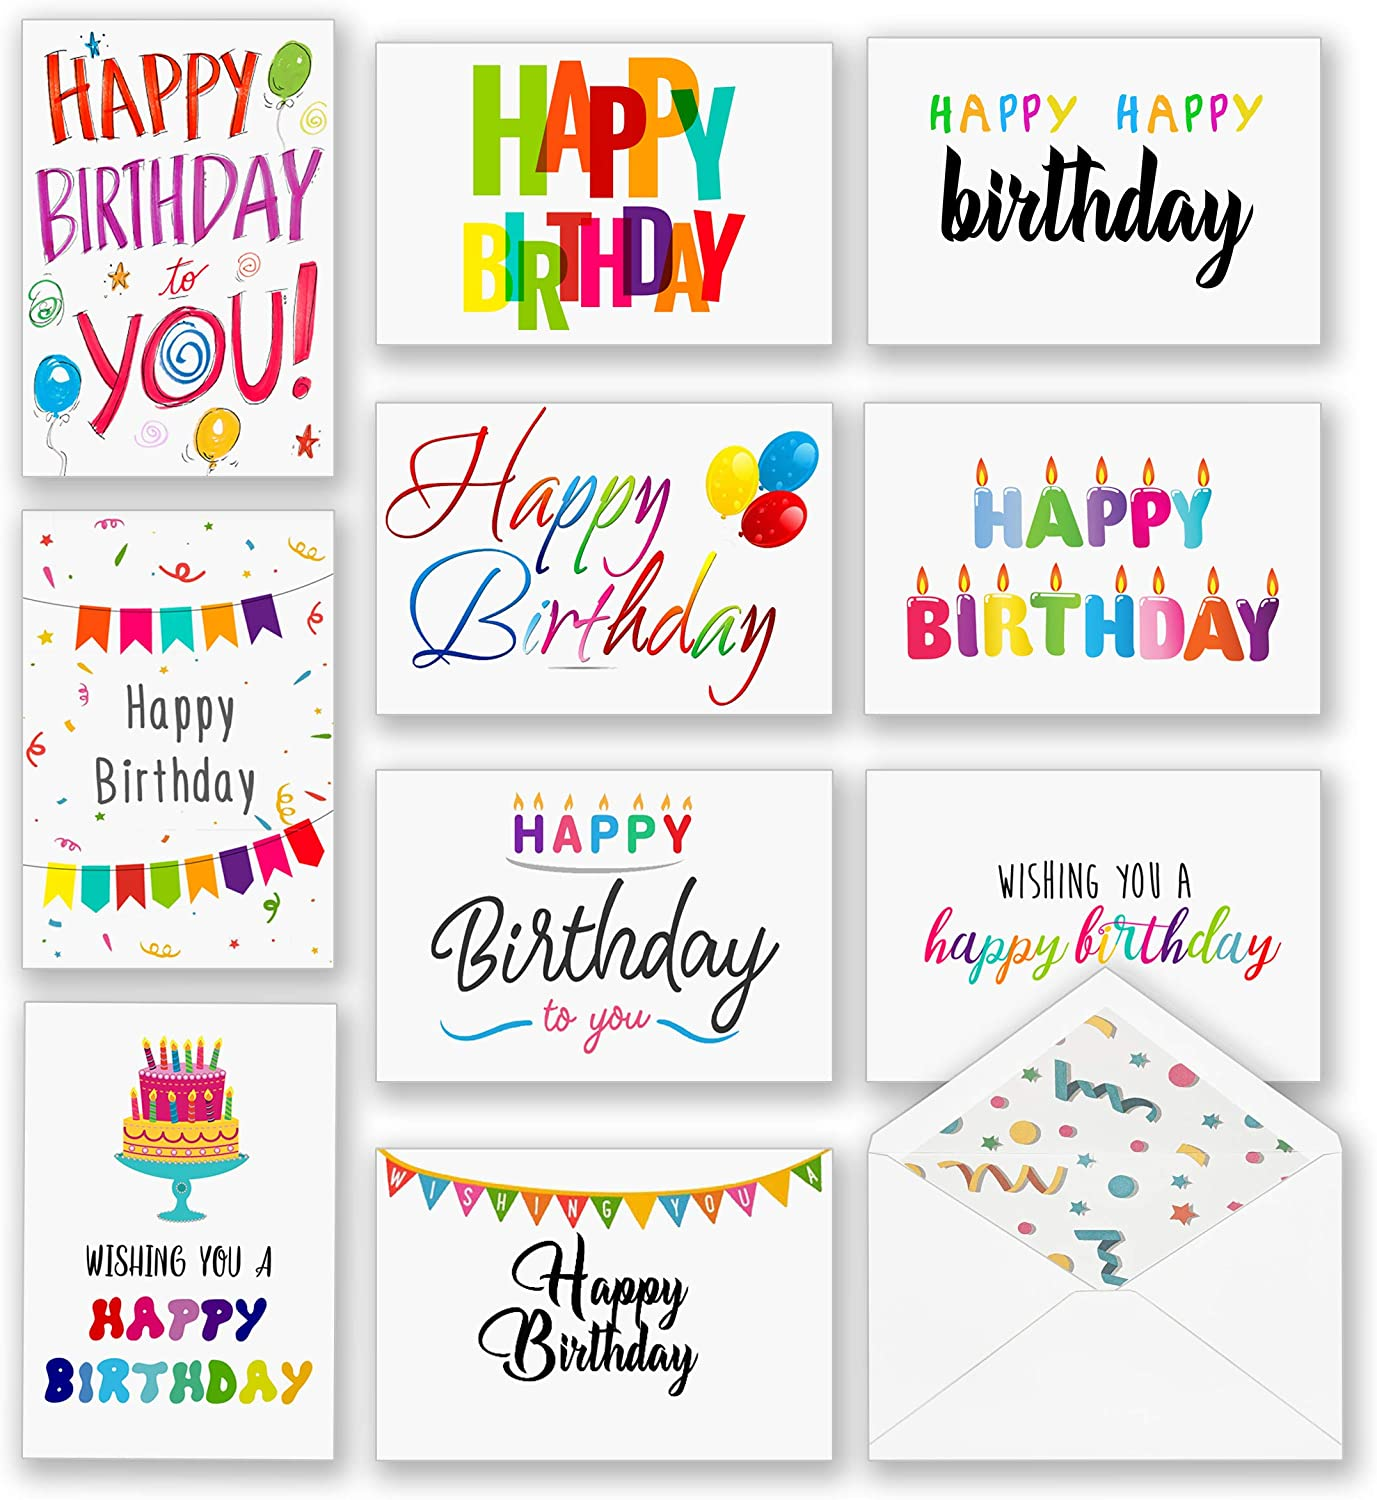 100 Happy Birthday Cards, Large Assorted Greeting Notes with Envelopes and Stickers, 10 Unique Designs, 5x7 Inch, Thick Card Stock Bulk Box Set, Blank Inside